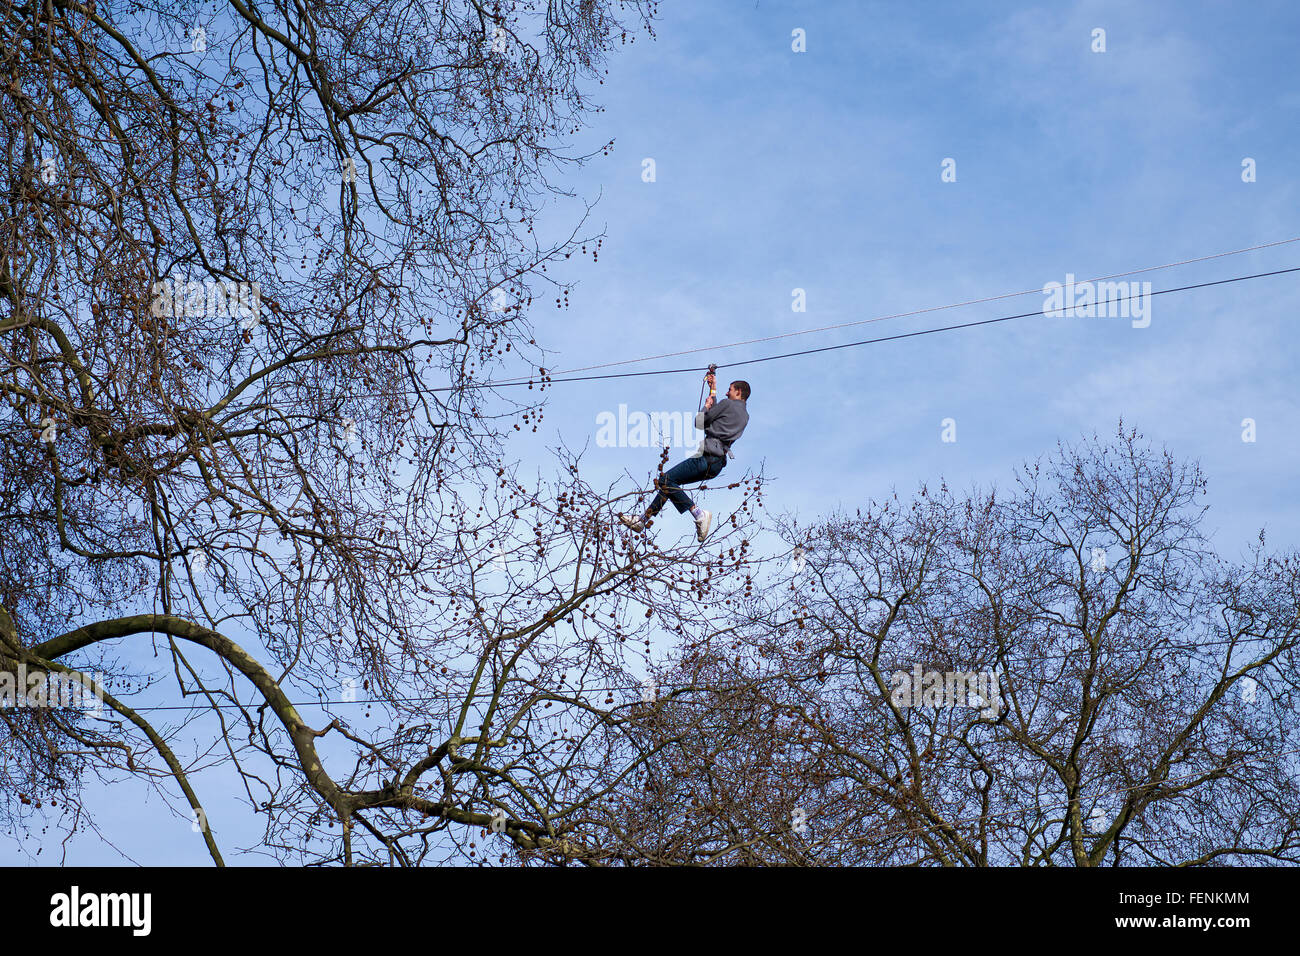 Man using a Zip wire in Battersea Park activity centre London - Stock Image